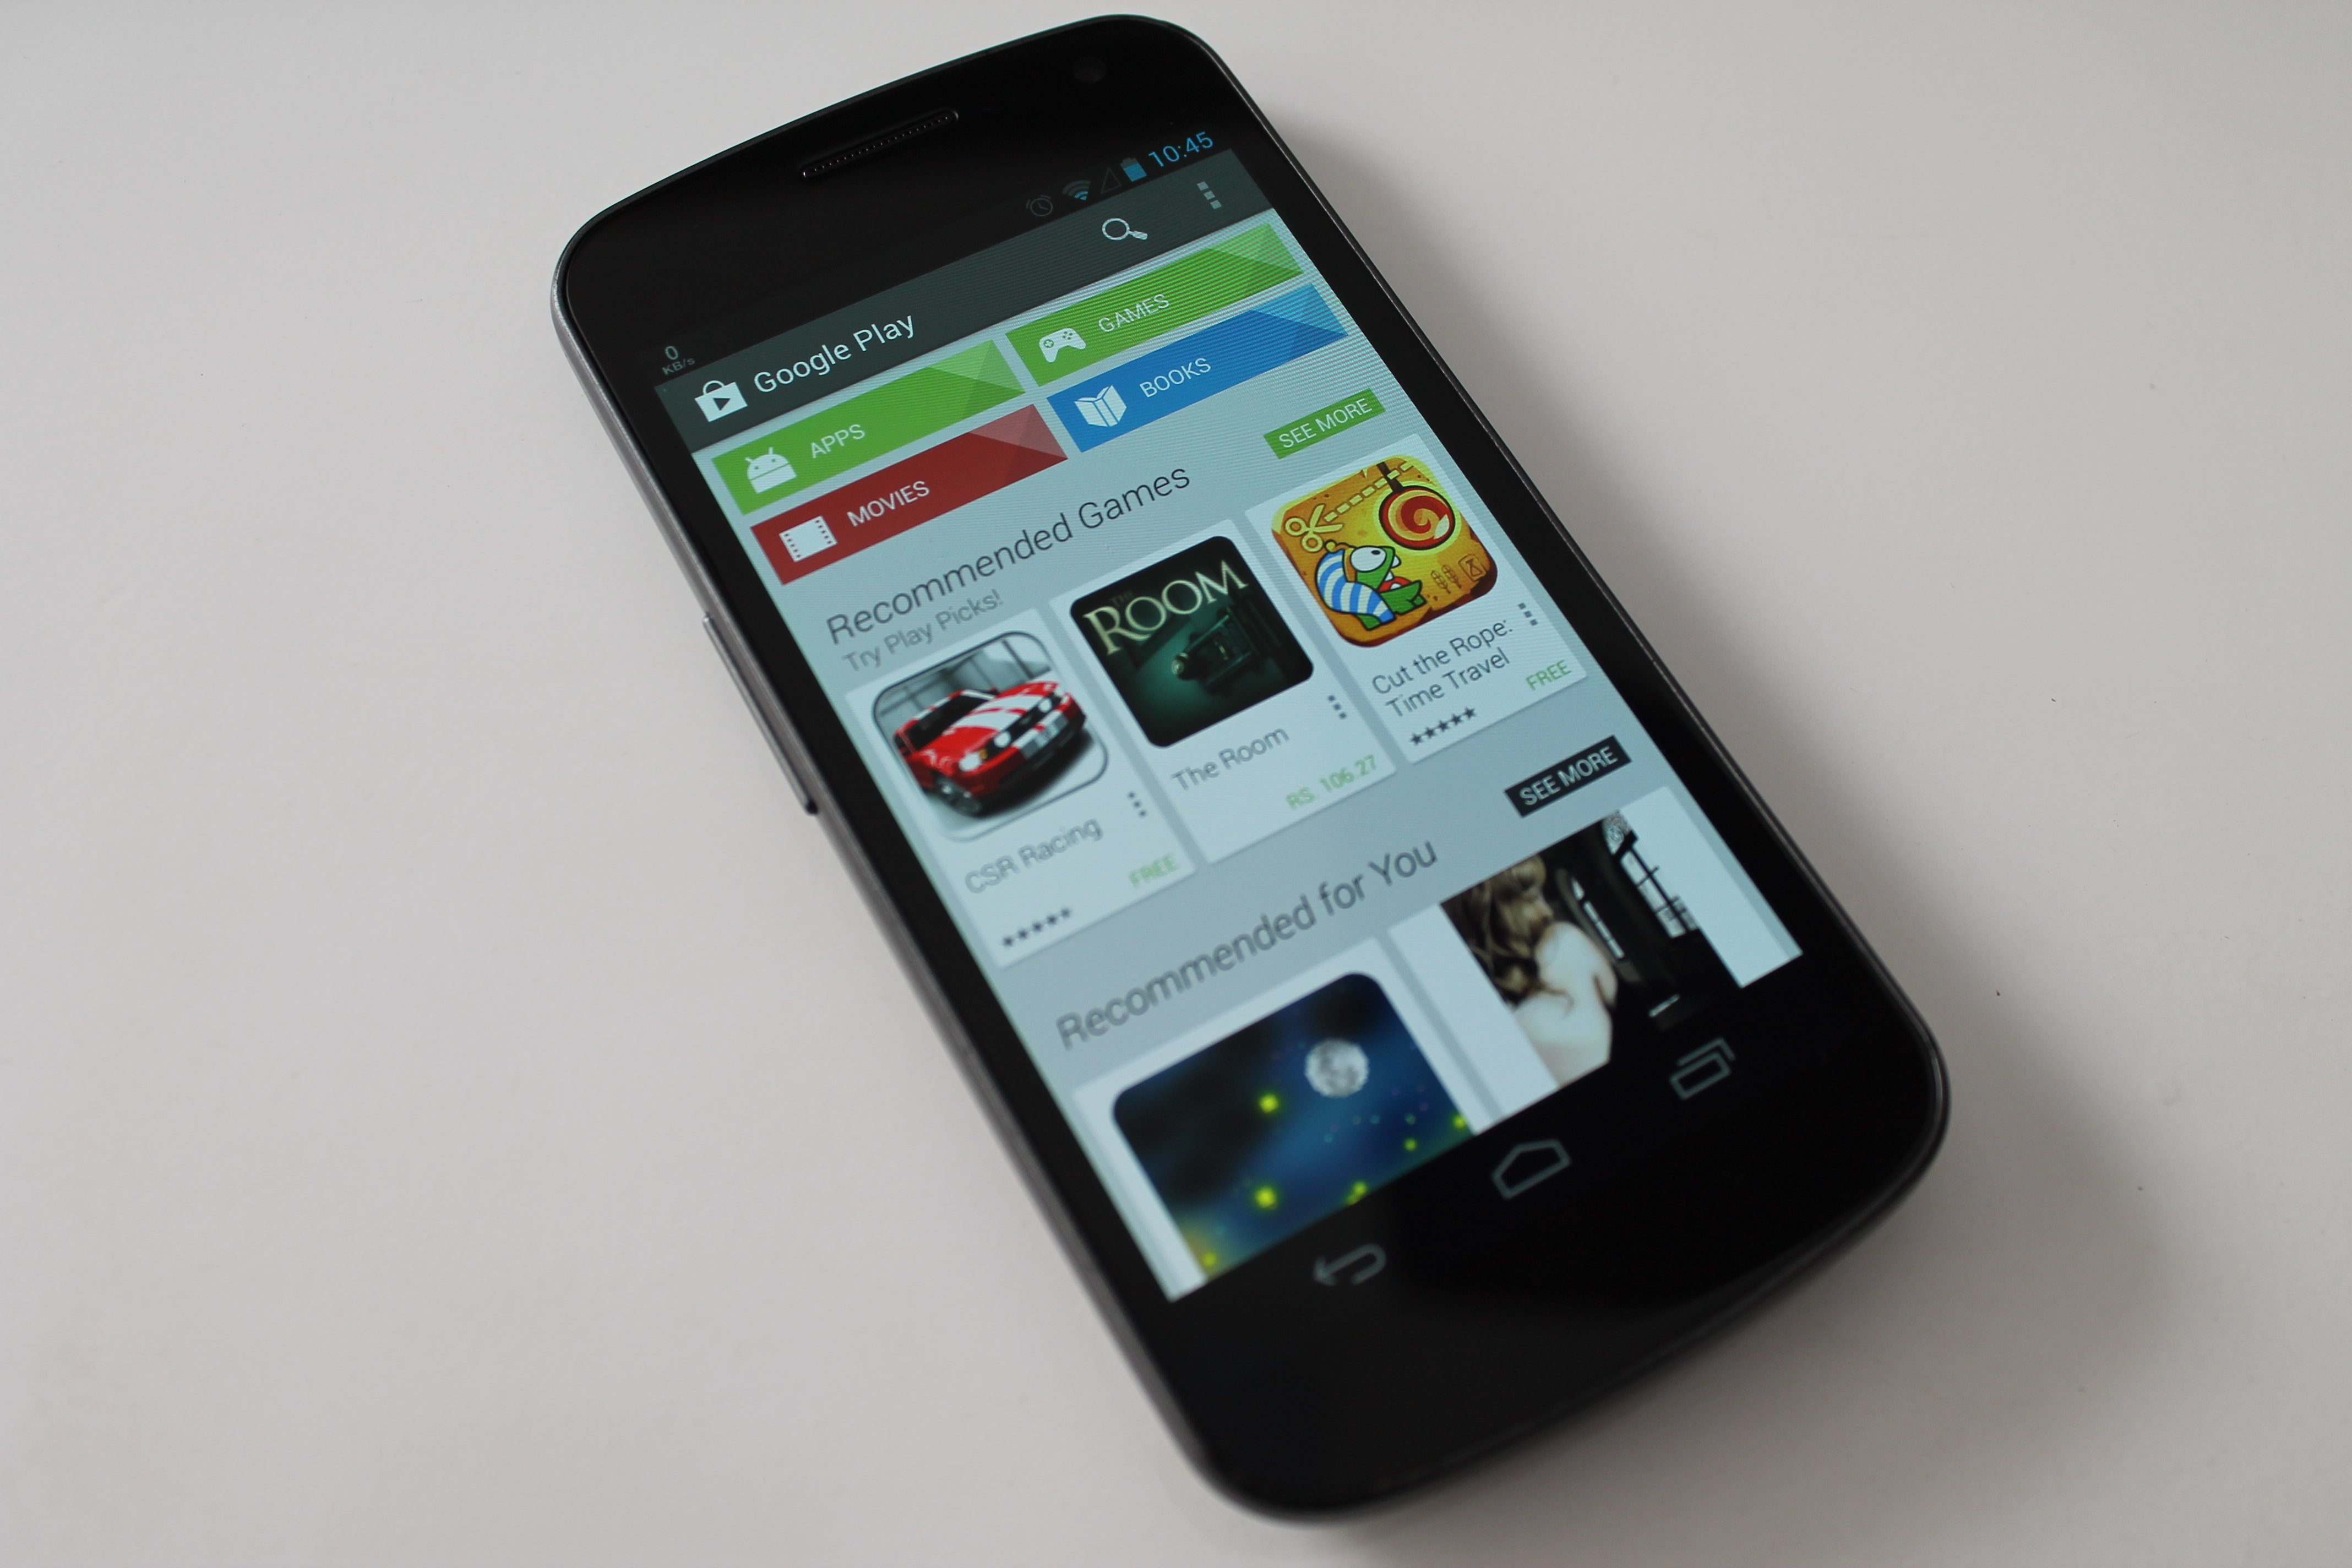 Google Play Store Galaxy Nexus